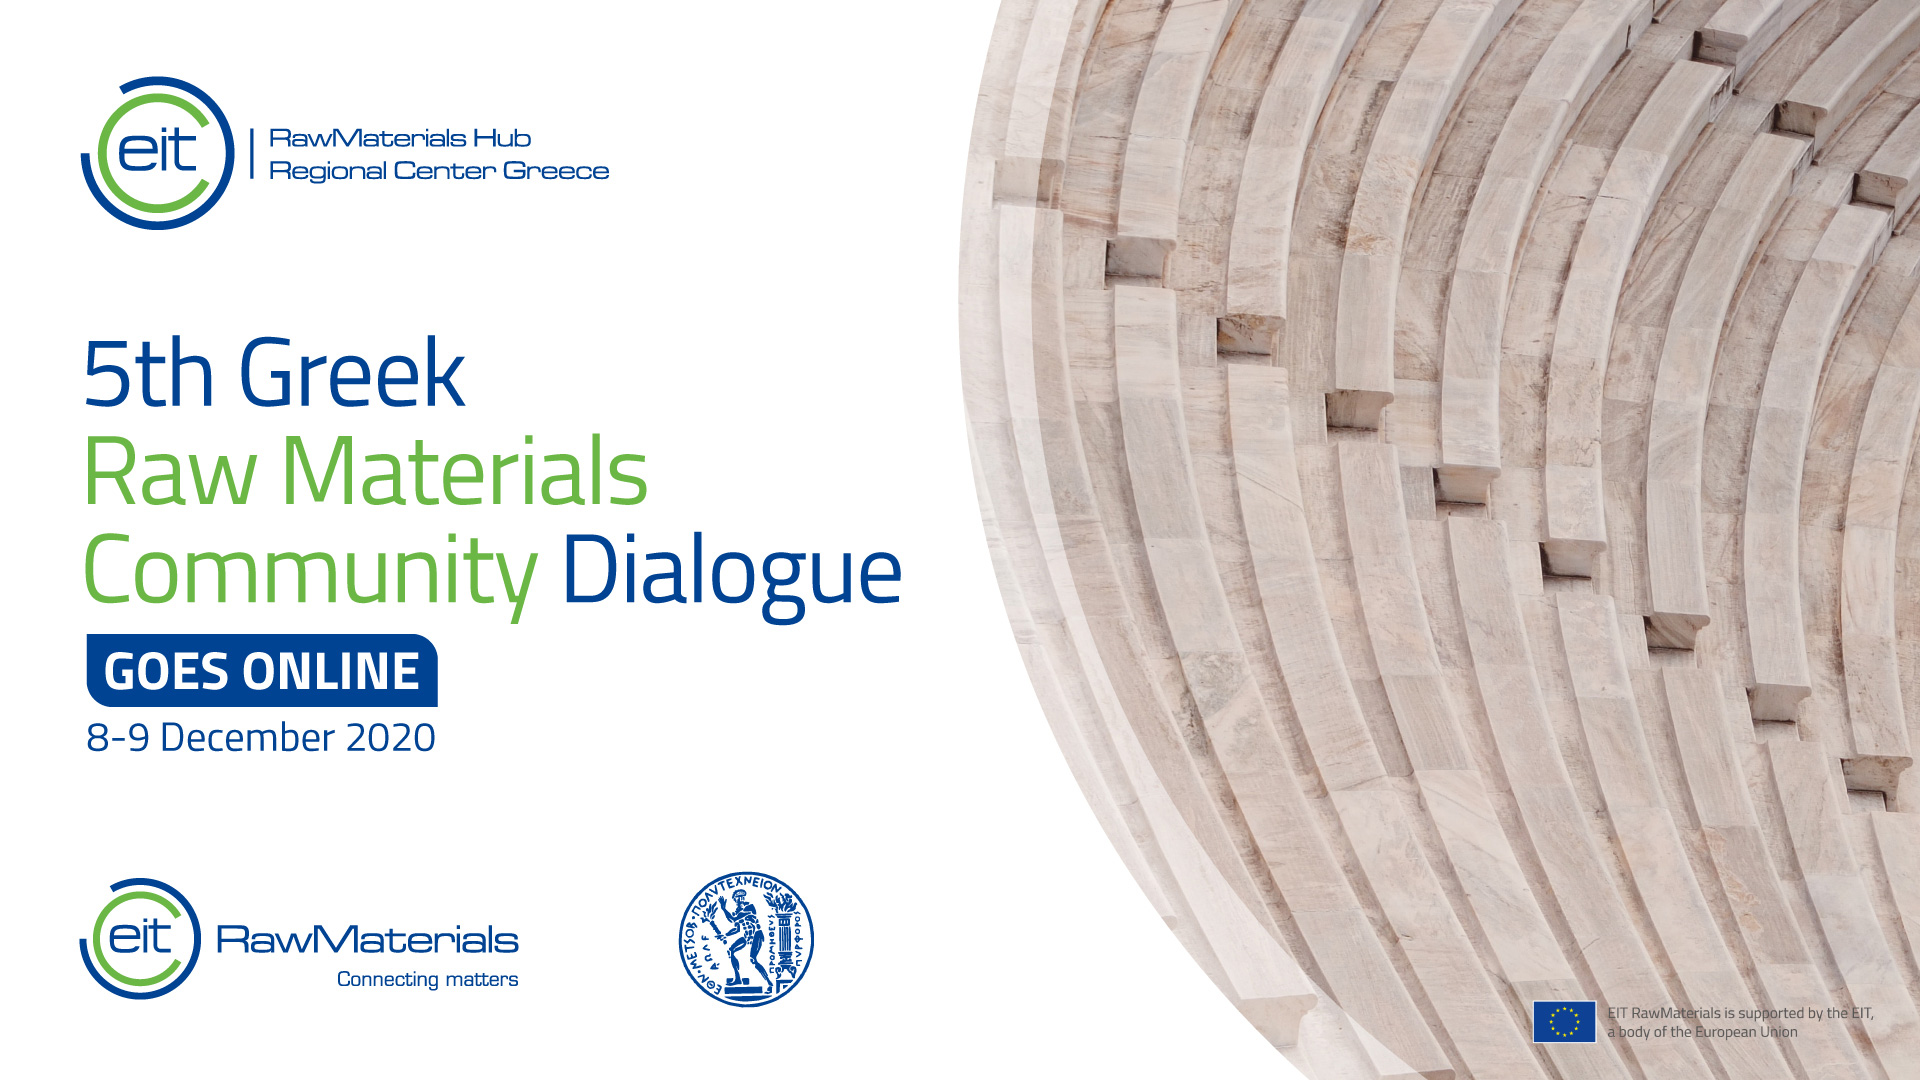 5th Greek Raw Materials Community Dialogue